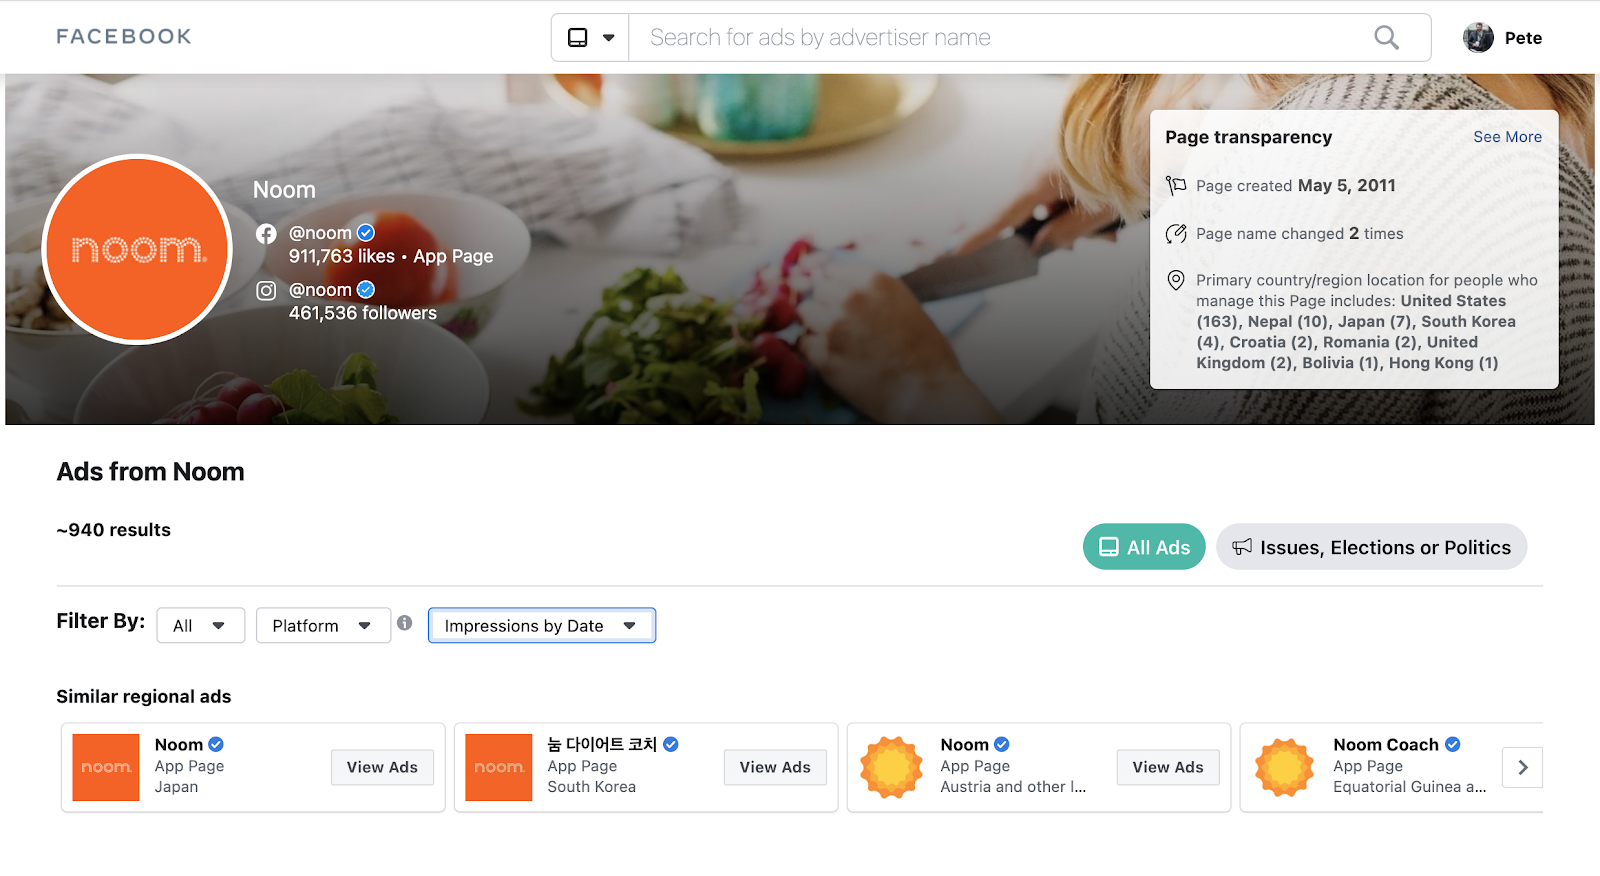 Noom's facebook ad spend and strategy